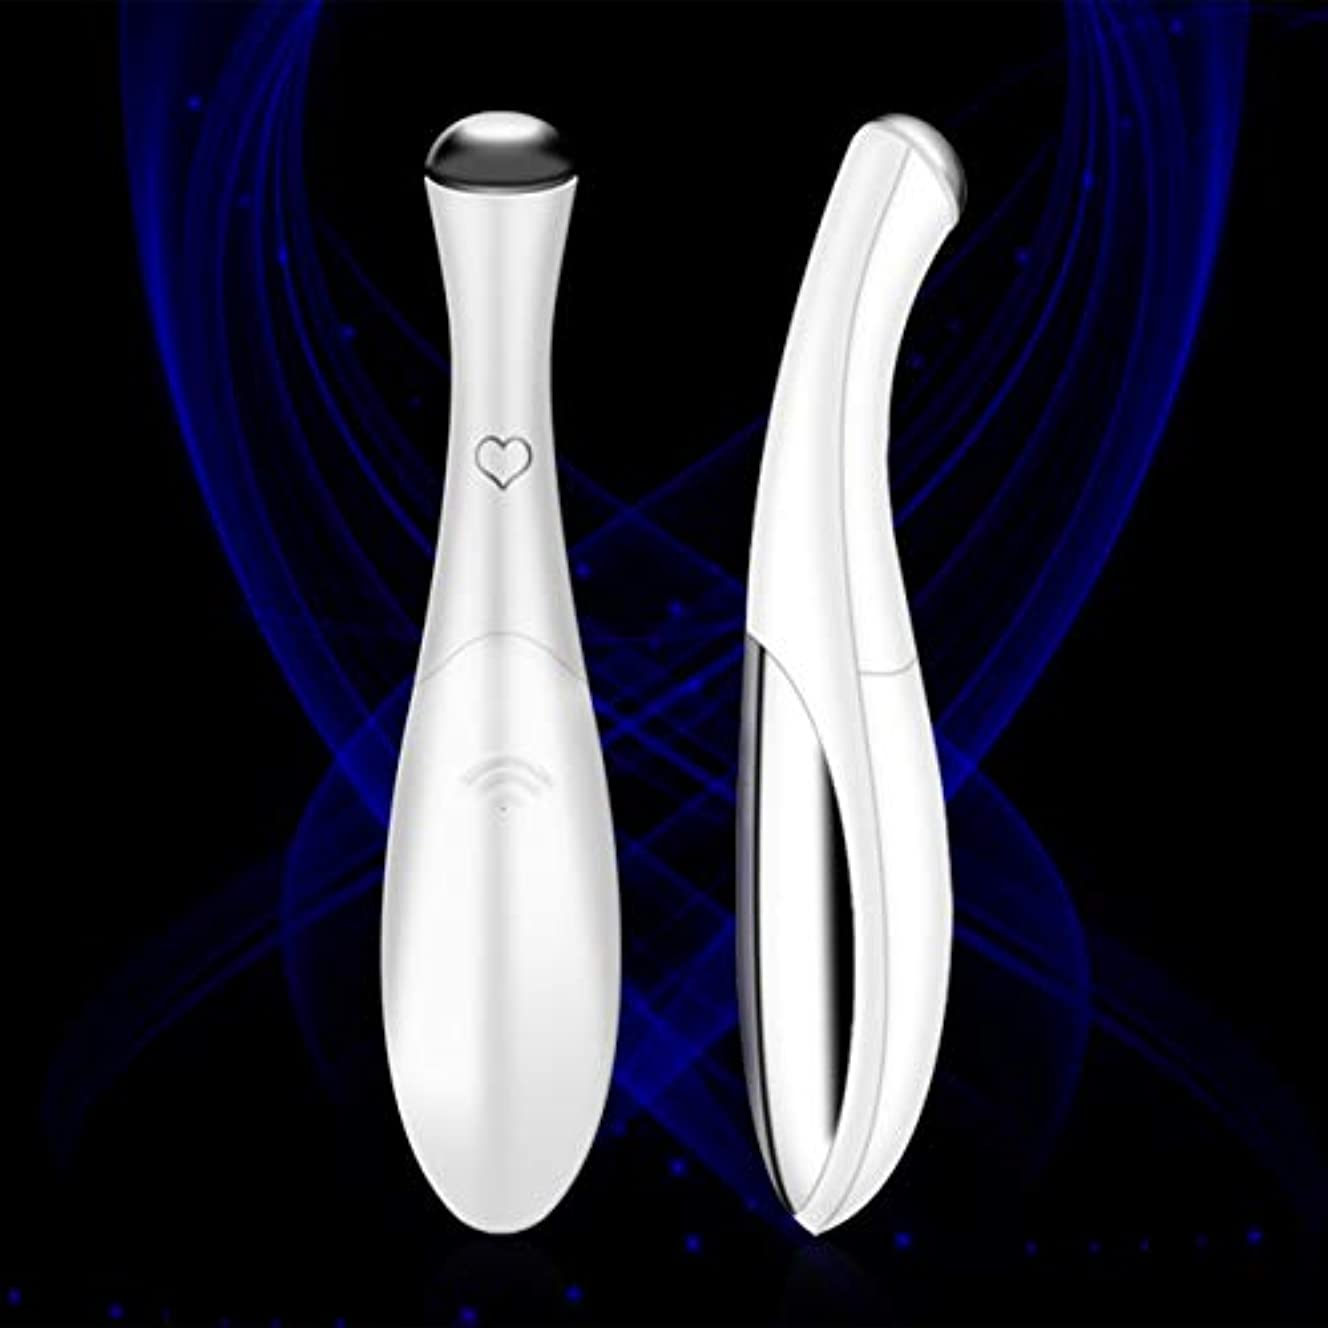 タワーベリーわずらわしいEye Massager Device Pen Type Facials Vibration Anti-aging Wrinkle Removal Pouch Dark Circles Skin Lifting Machine...